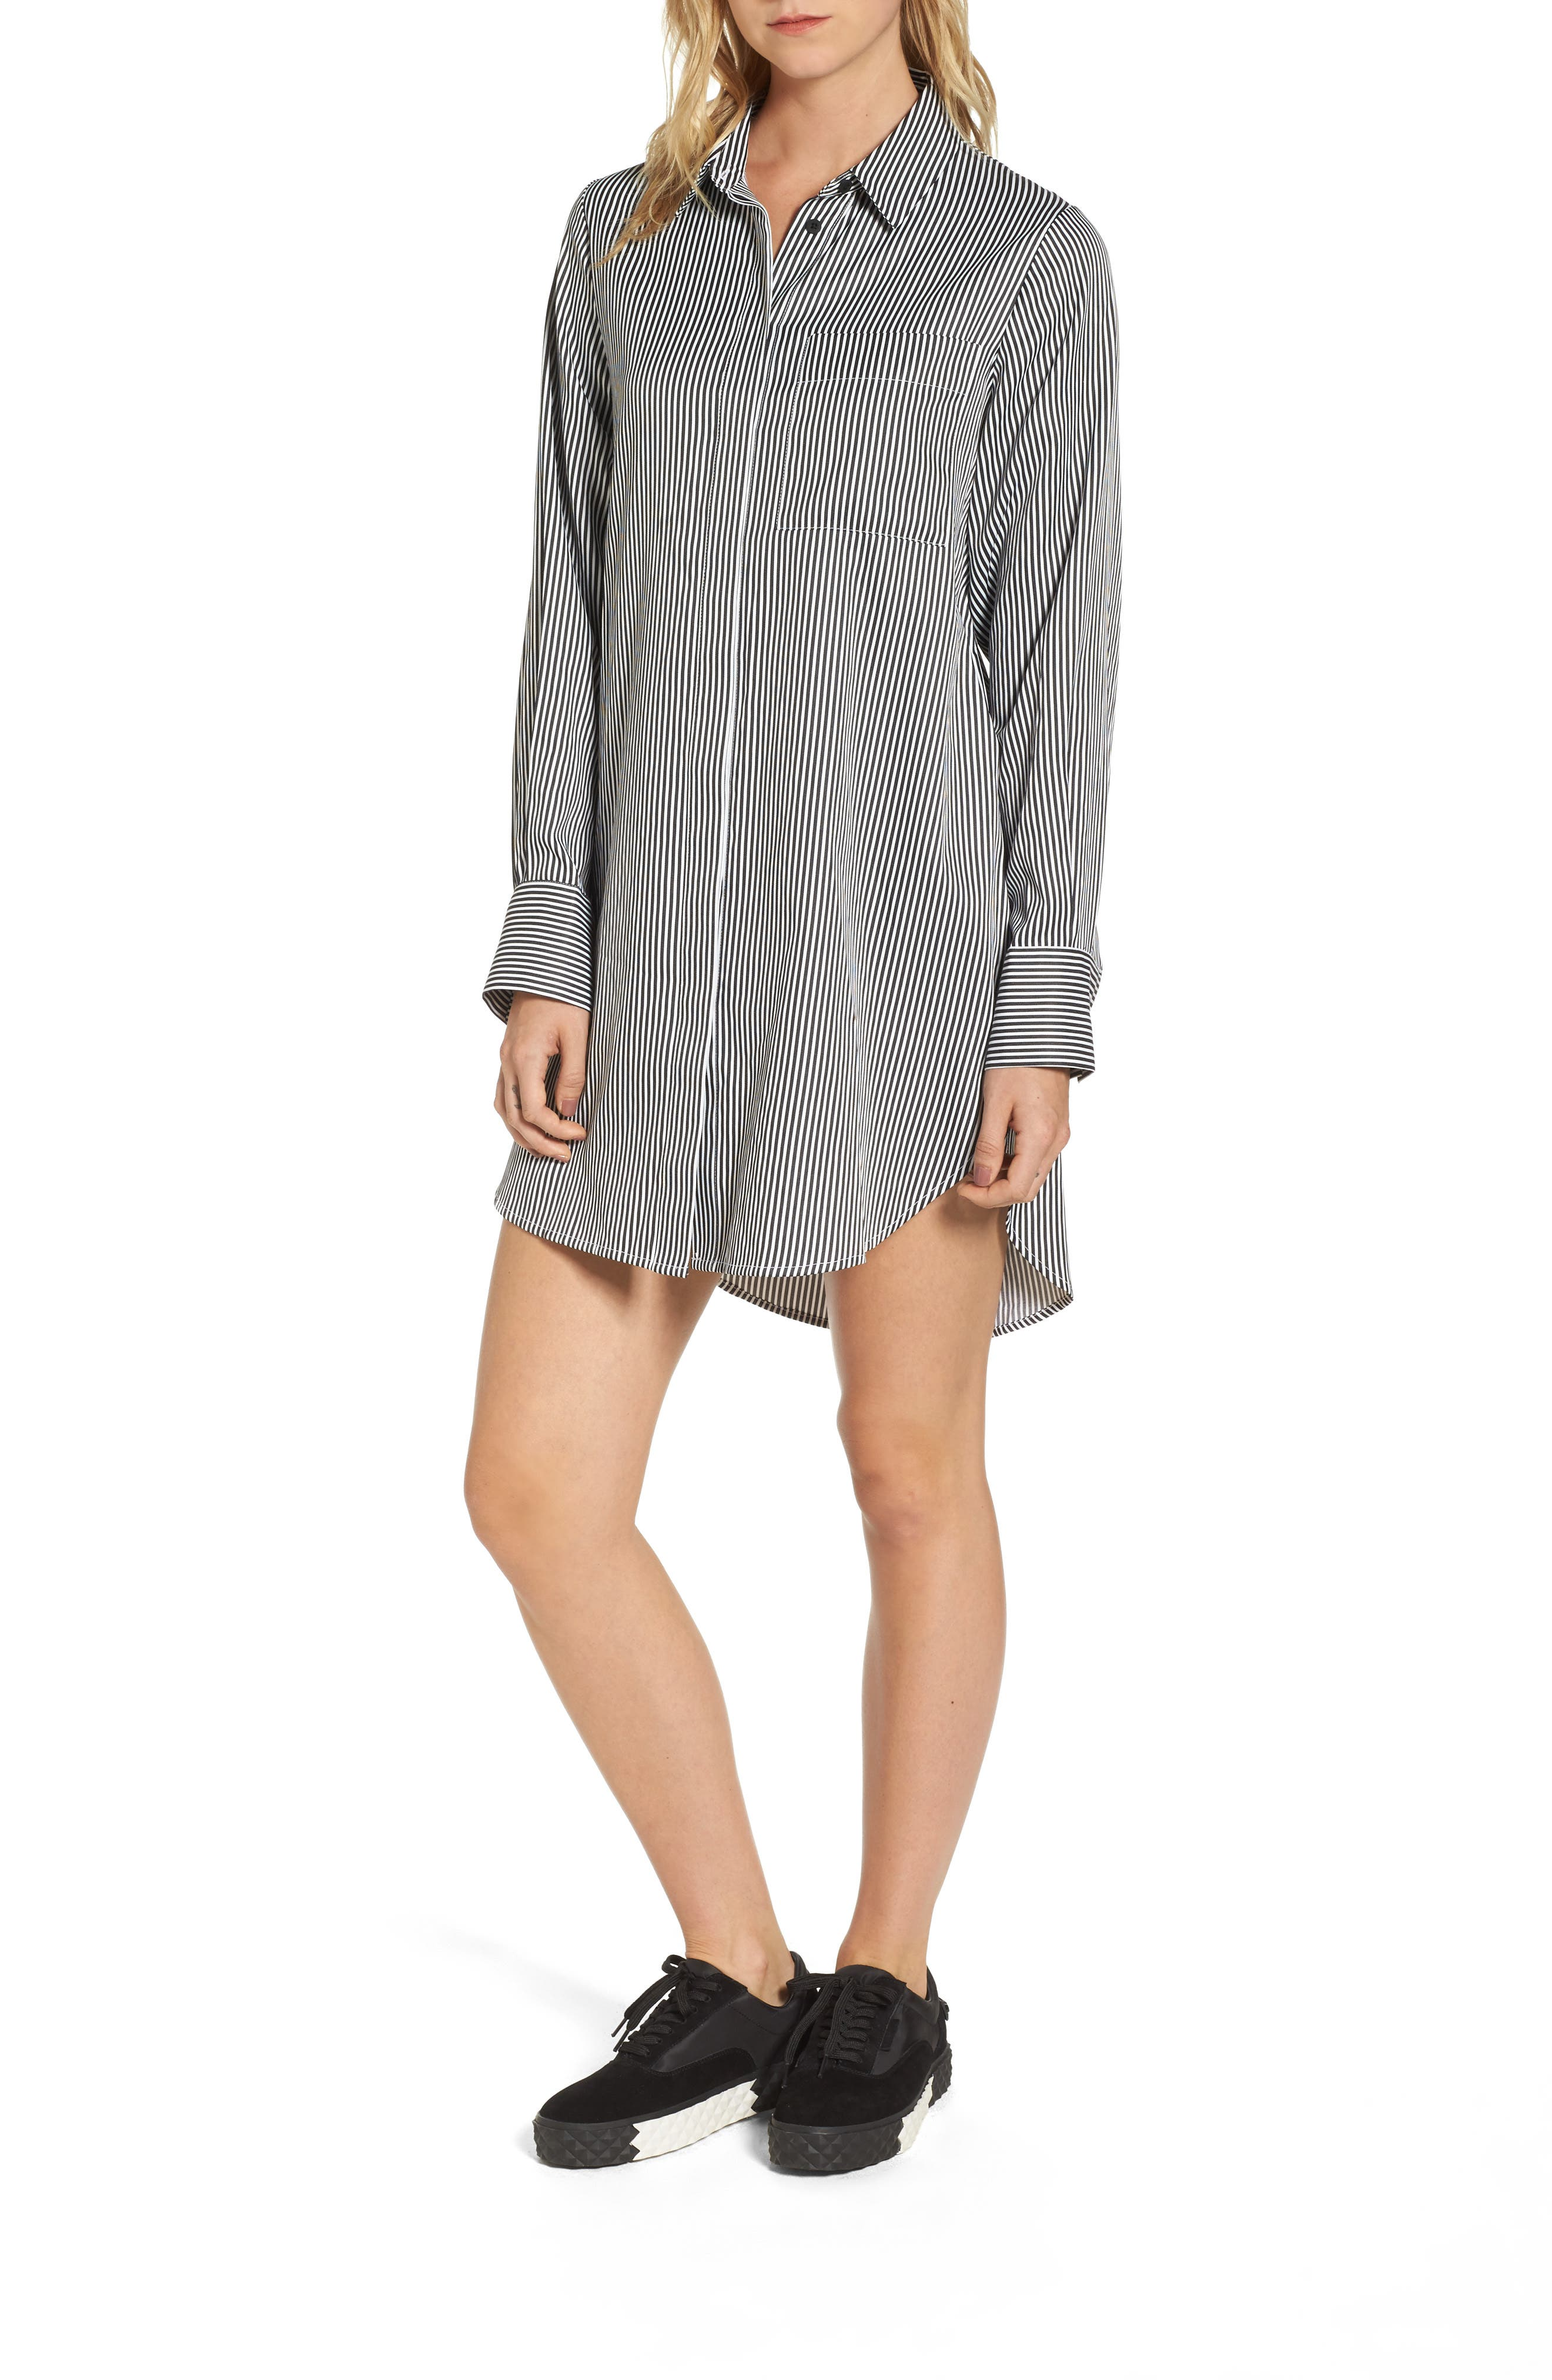 Alternate Image 1 Selected - KENDALL + KYLIE Lace-Up Back Shirtdress